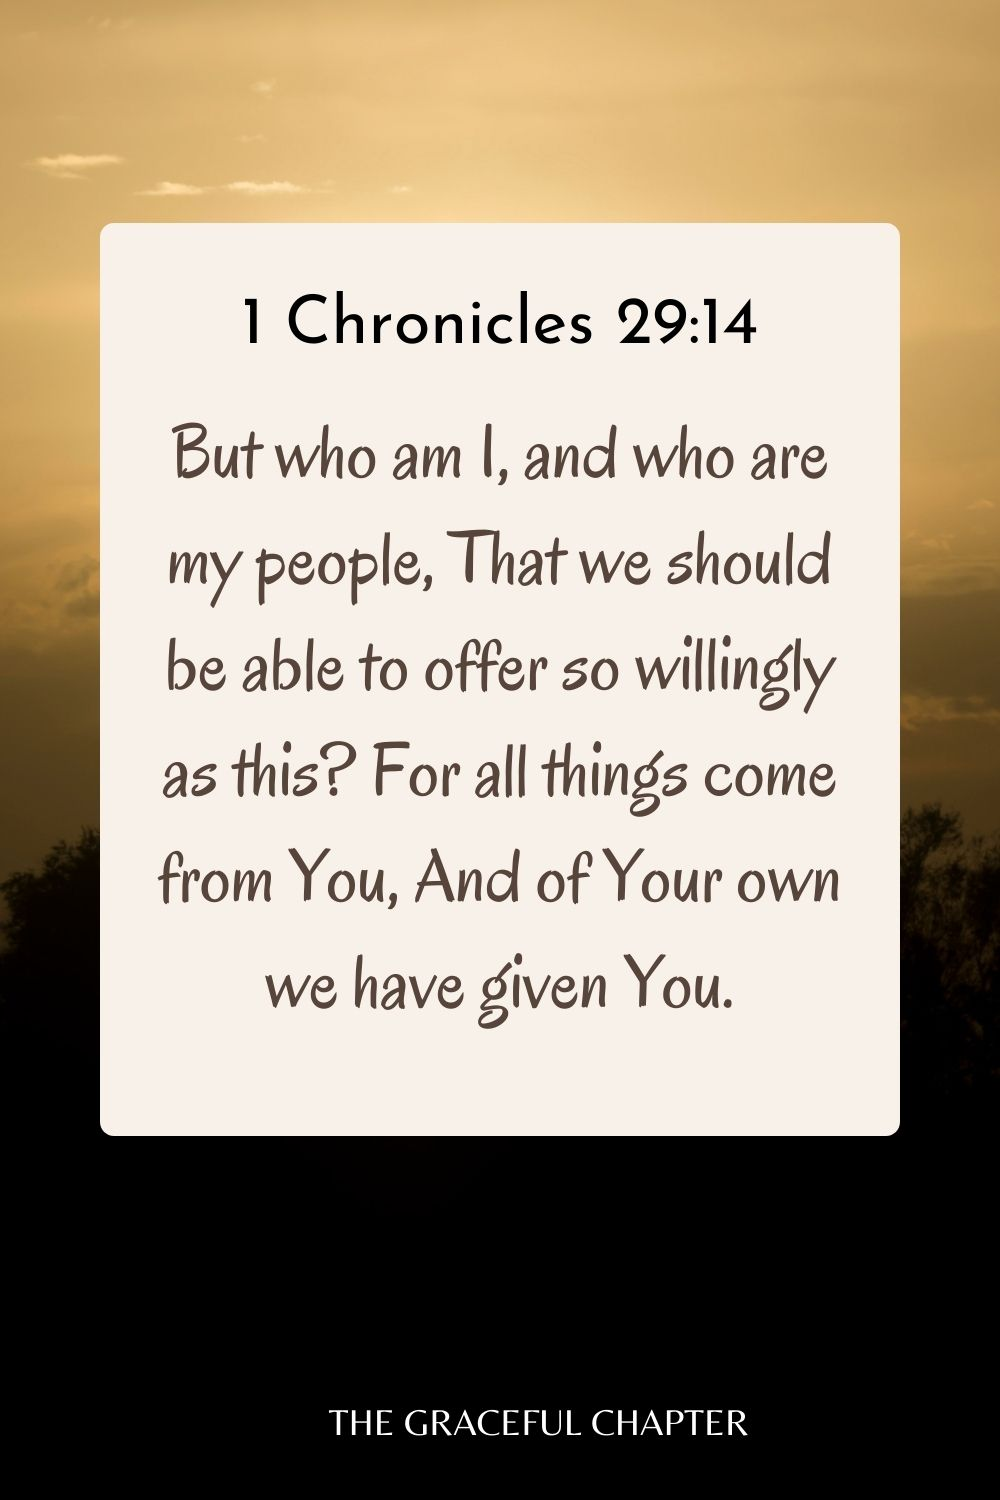 But who am I, and who are my people, That we should be able to offer so willingly as this? For all things come from You, And of Your own we have given You. 1 Chronicles 29:14